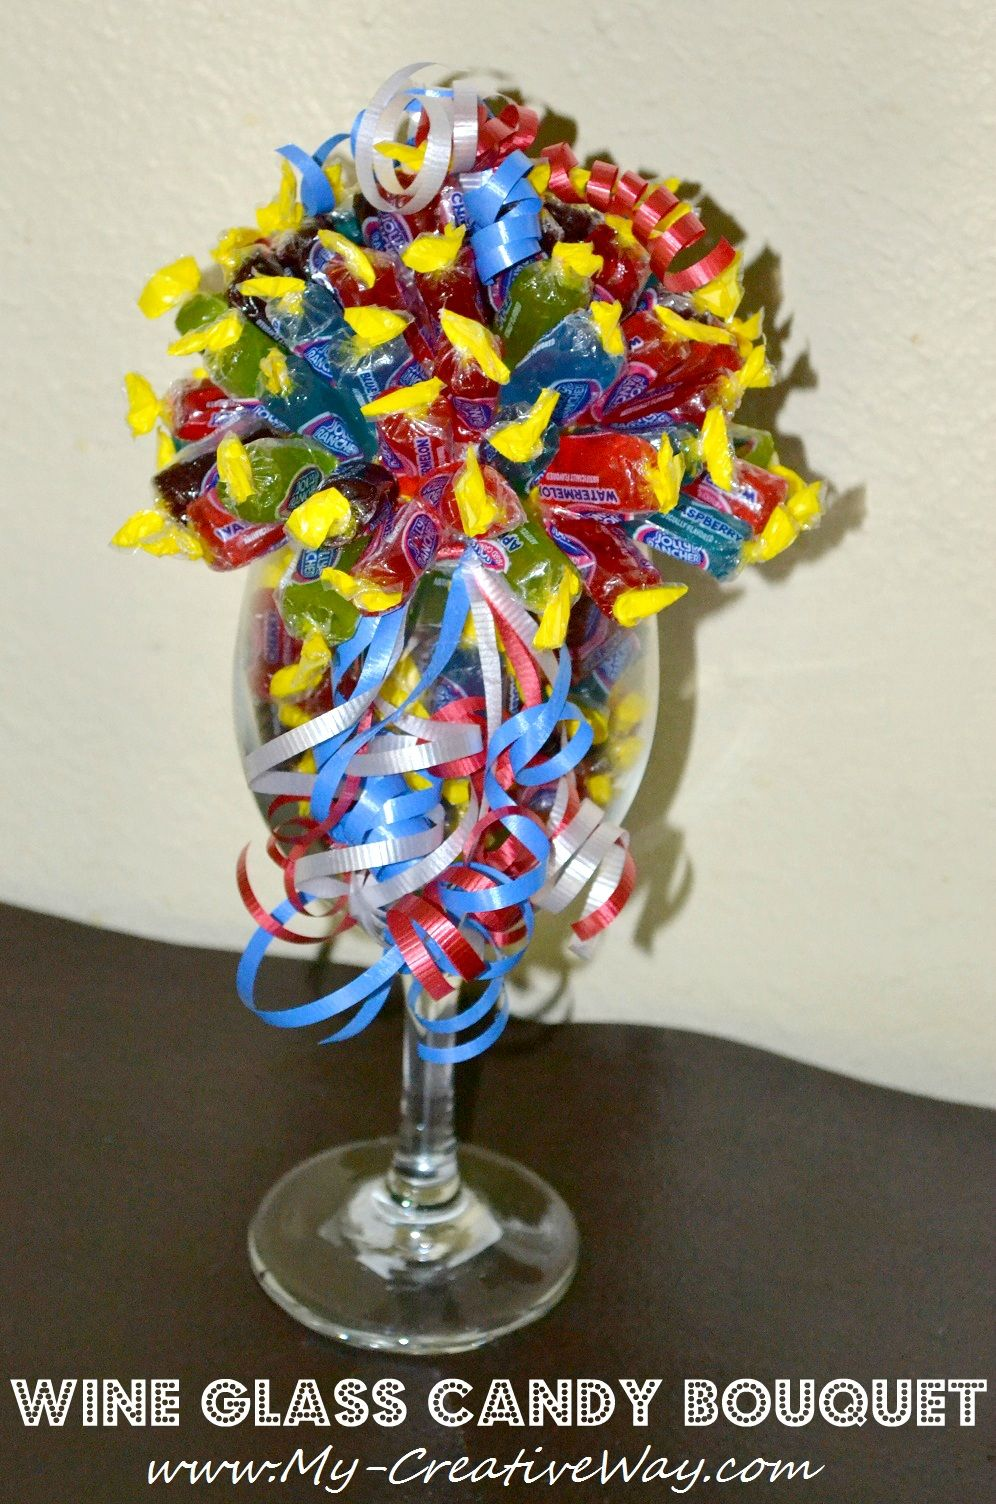 My creative way how to make a candy bouquet in a wine glass could my creative way how to make a candy bouquet in a wine glass could izmirmasajfo Choice Image